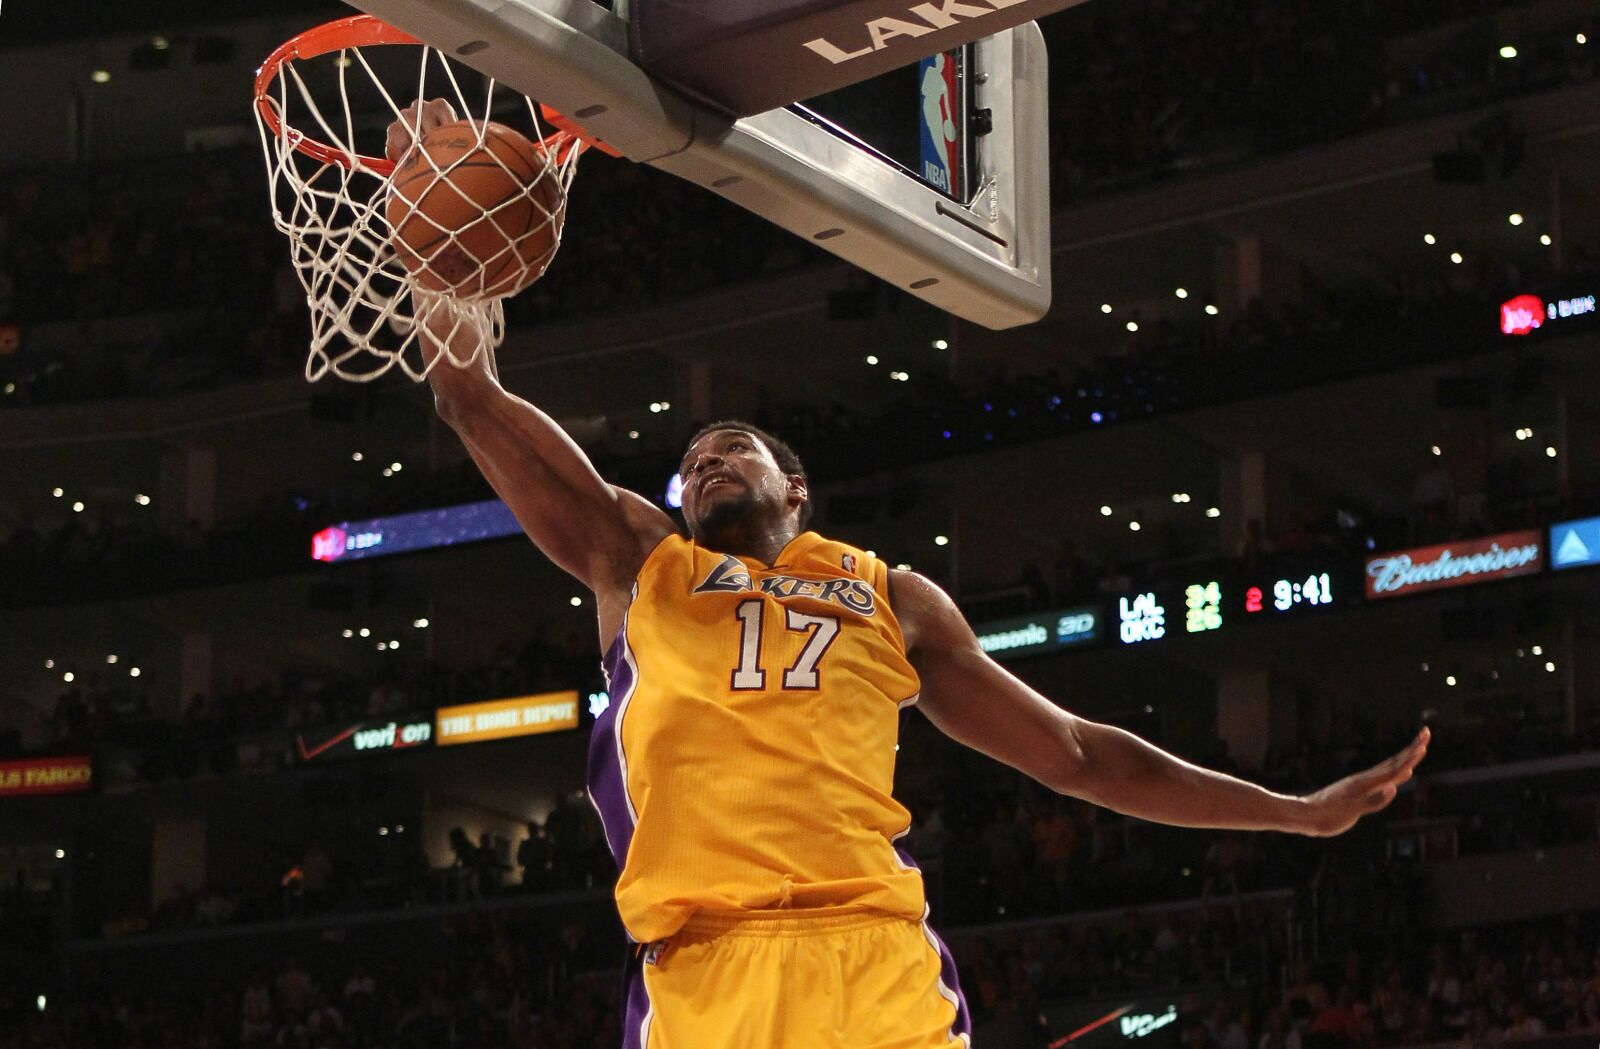 d54ac8abae6 Lakers Rumors: Andrew Bynum works out at practice facility